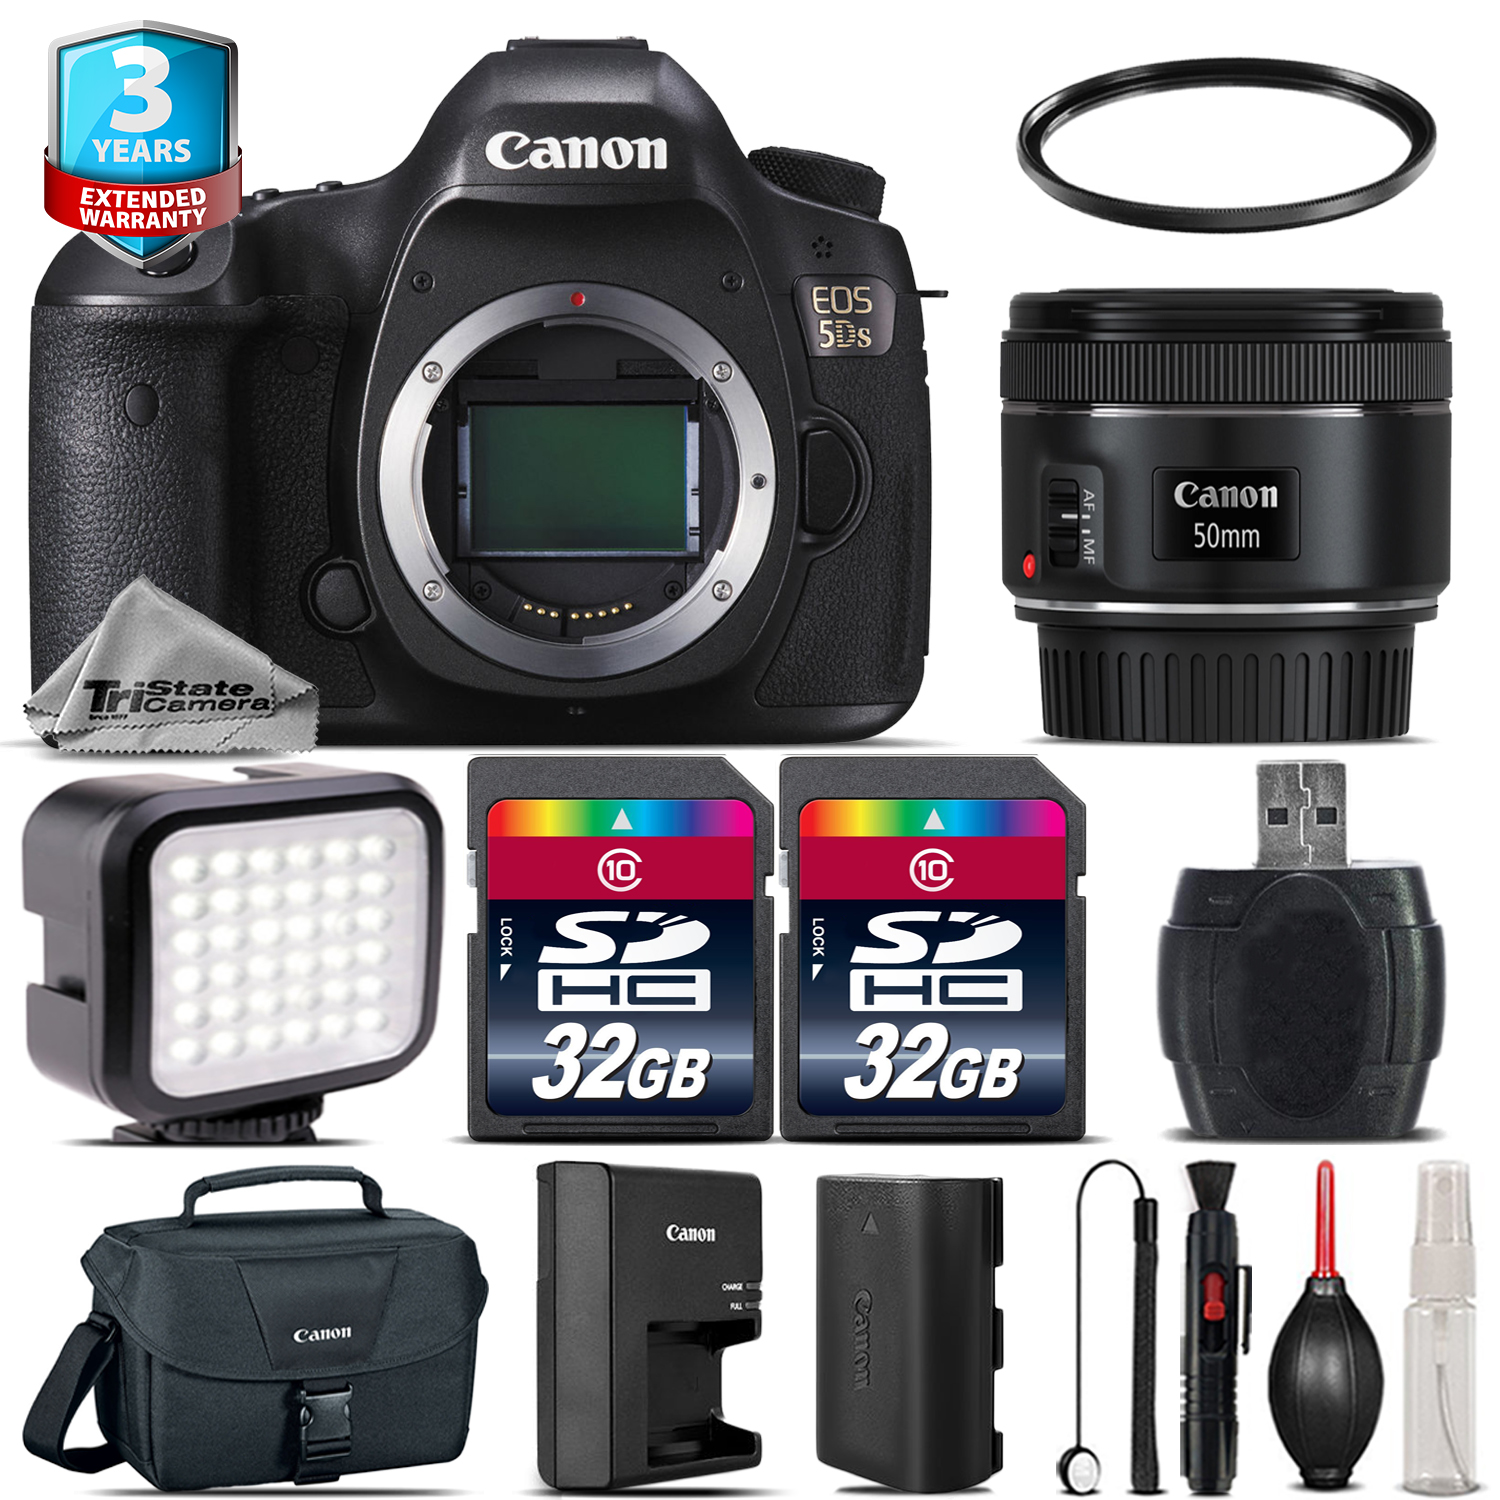 EOS 5DS DSLR Camera + 50mm 1.8 STM + LED Light + Case + 64GB +2yr Warranty *FREE SHIPPING*